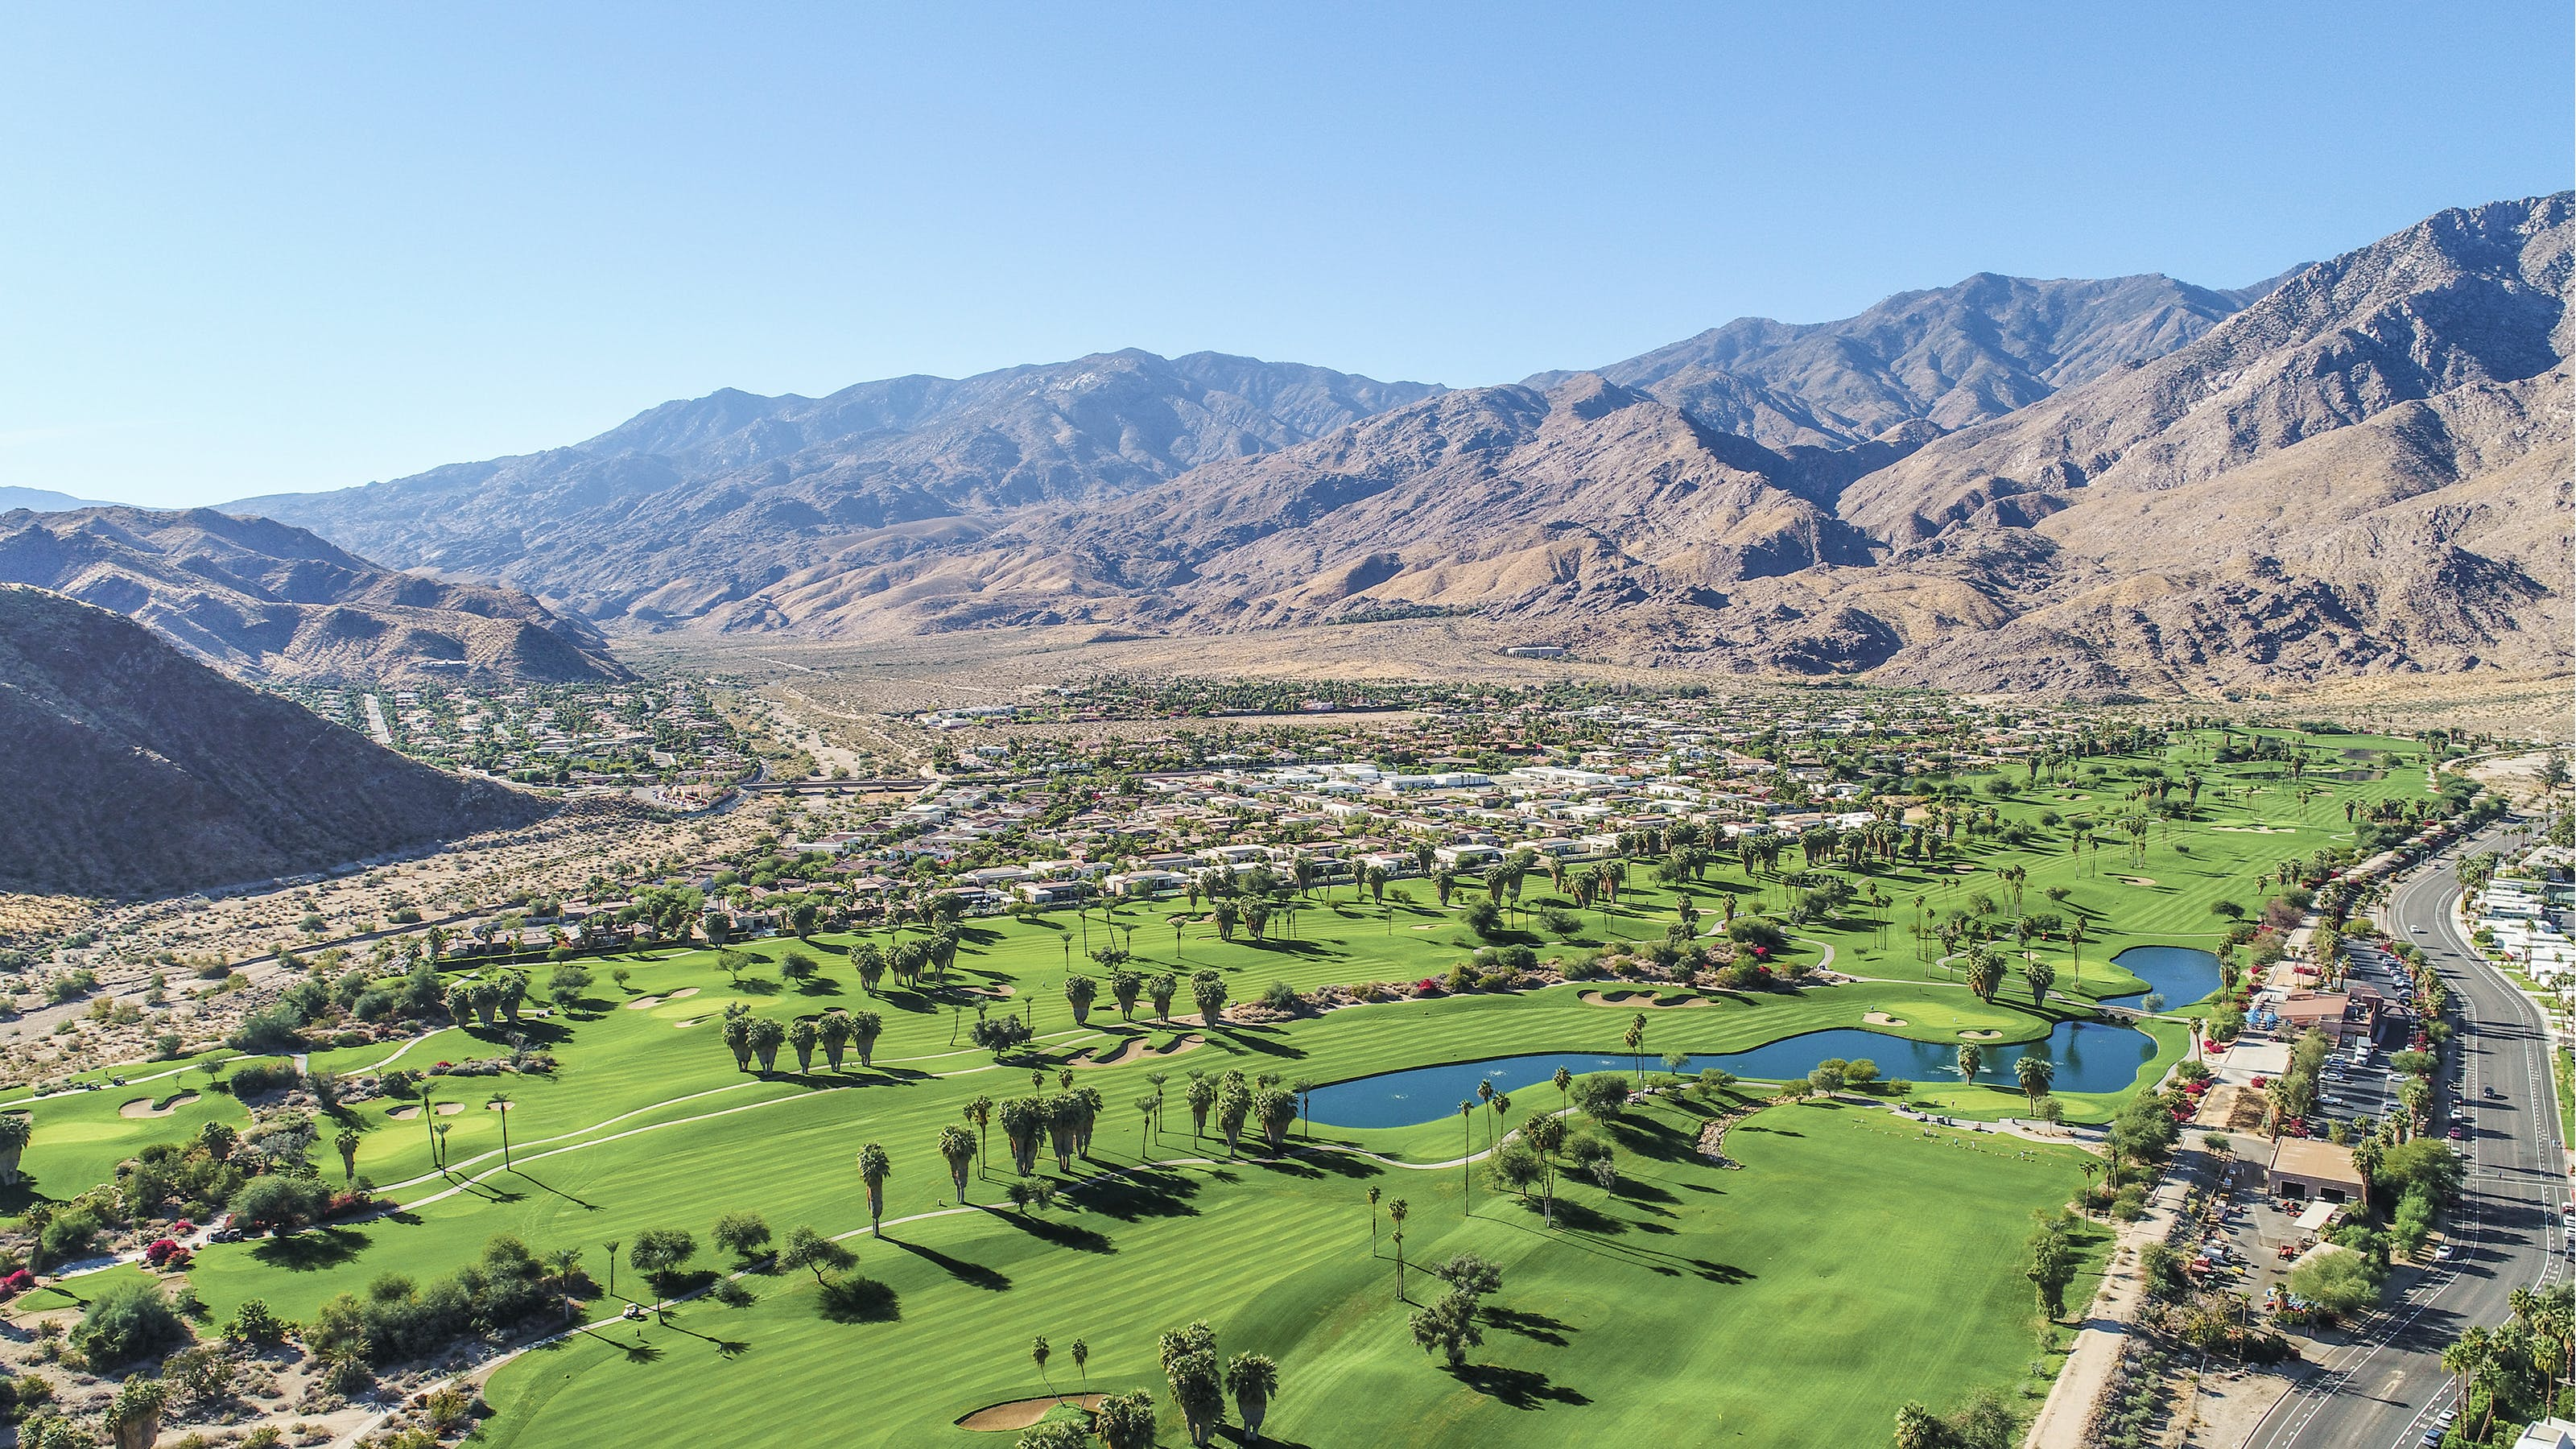 Palm Desert / Indian Springs